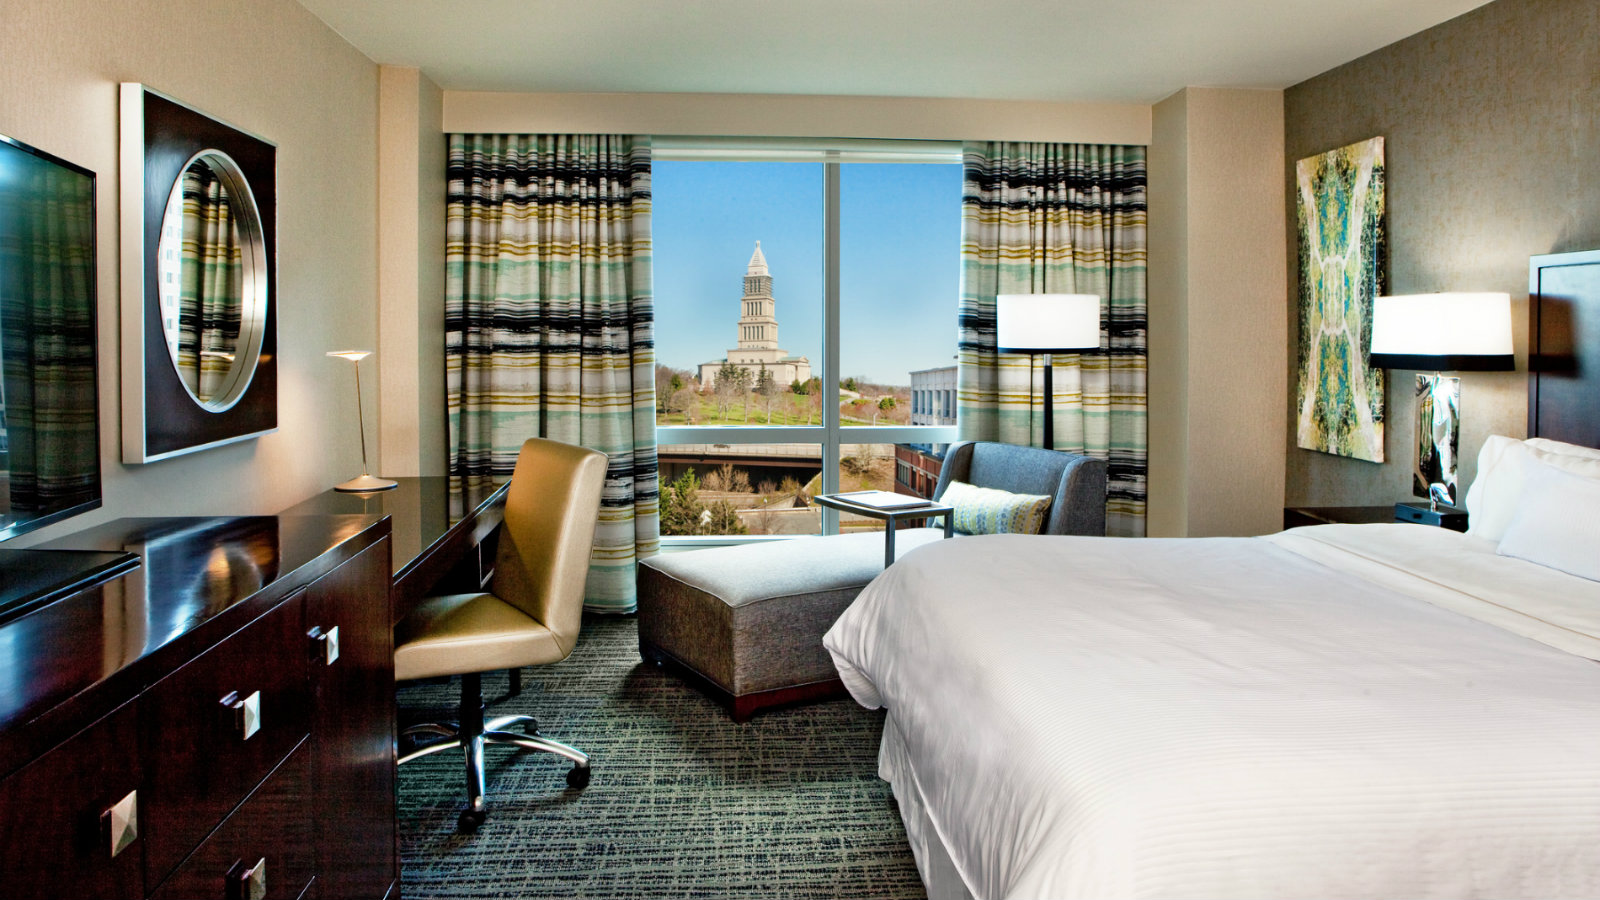 Newly renovated king room with a view at The Westin Alexandria Hotel